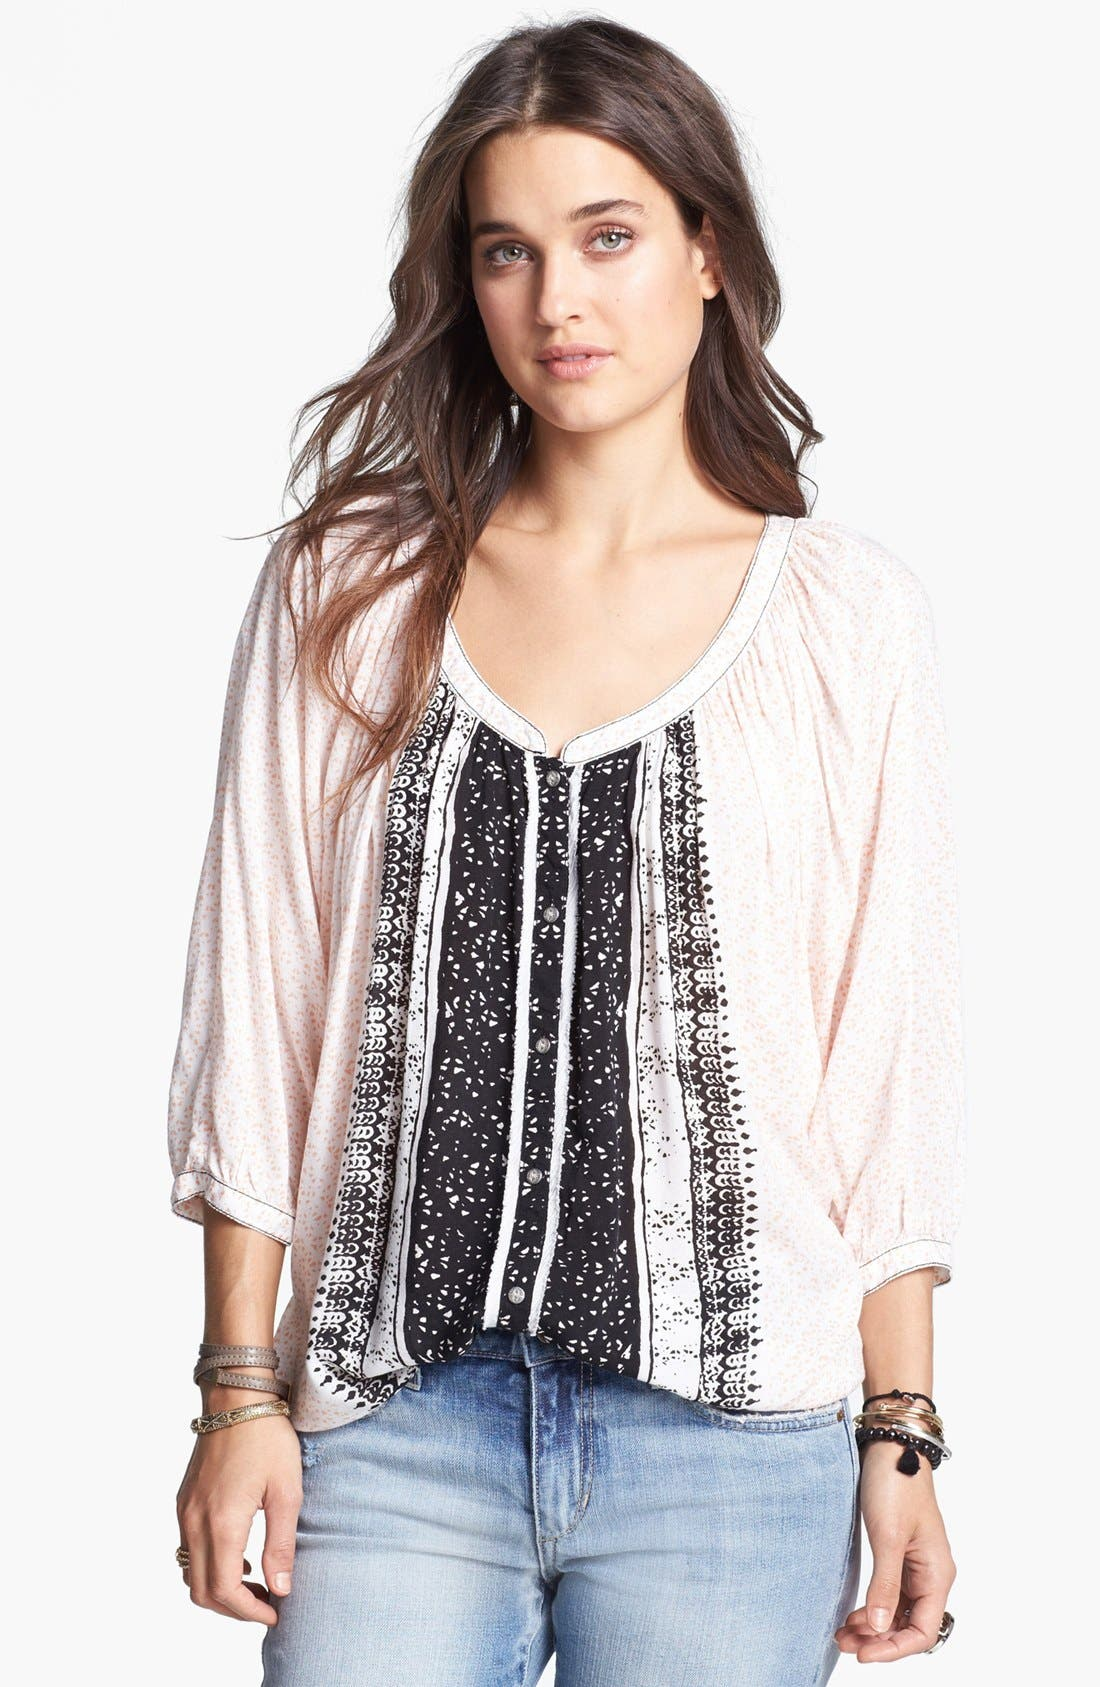 Alternate Image 1 Selected - Free People 'Days of Romance' Peasant Top